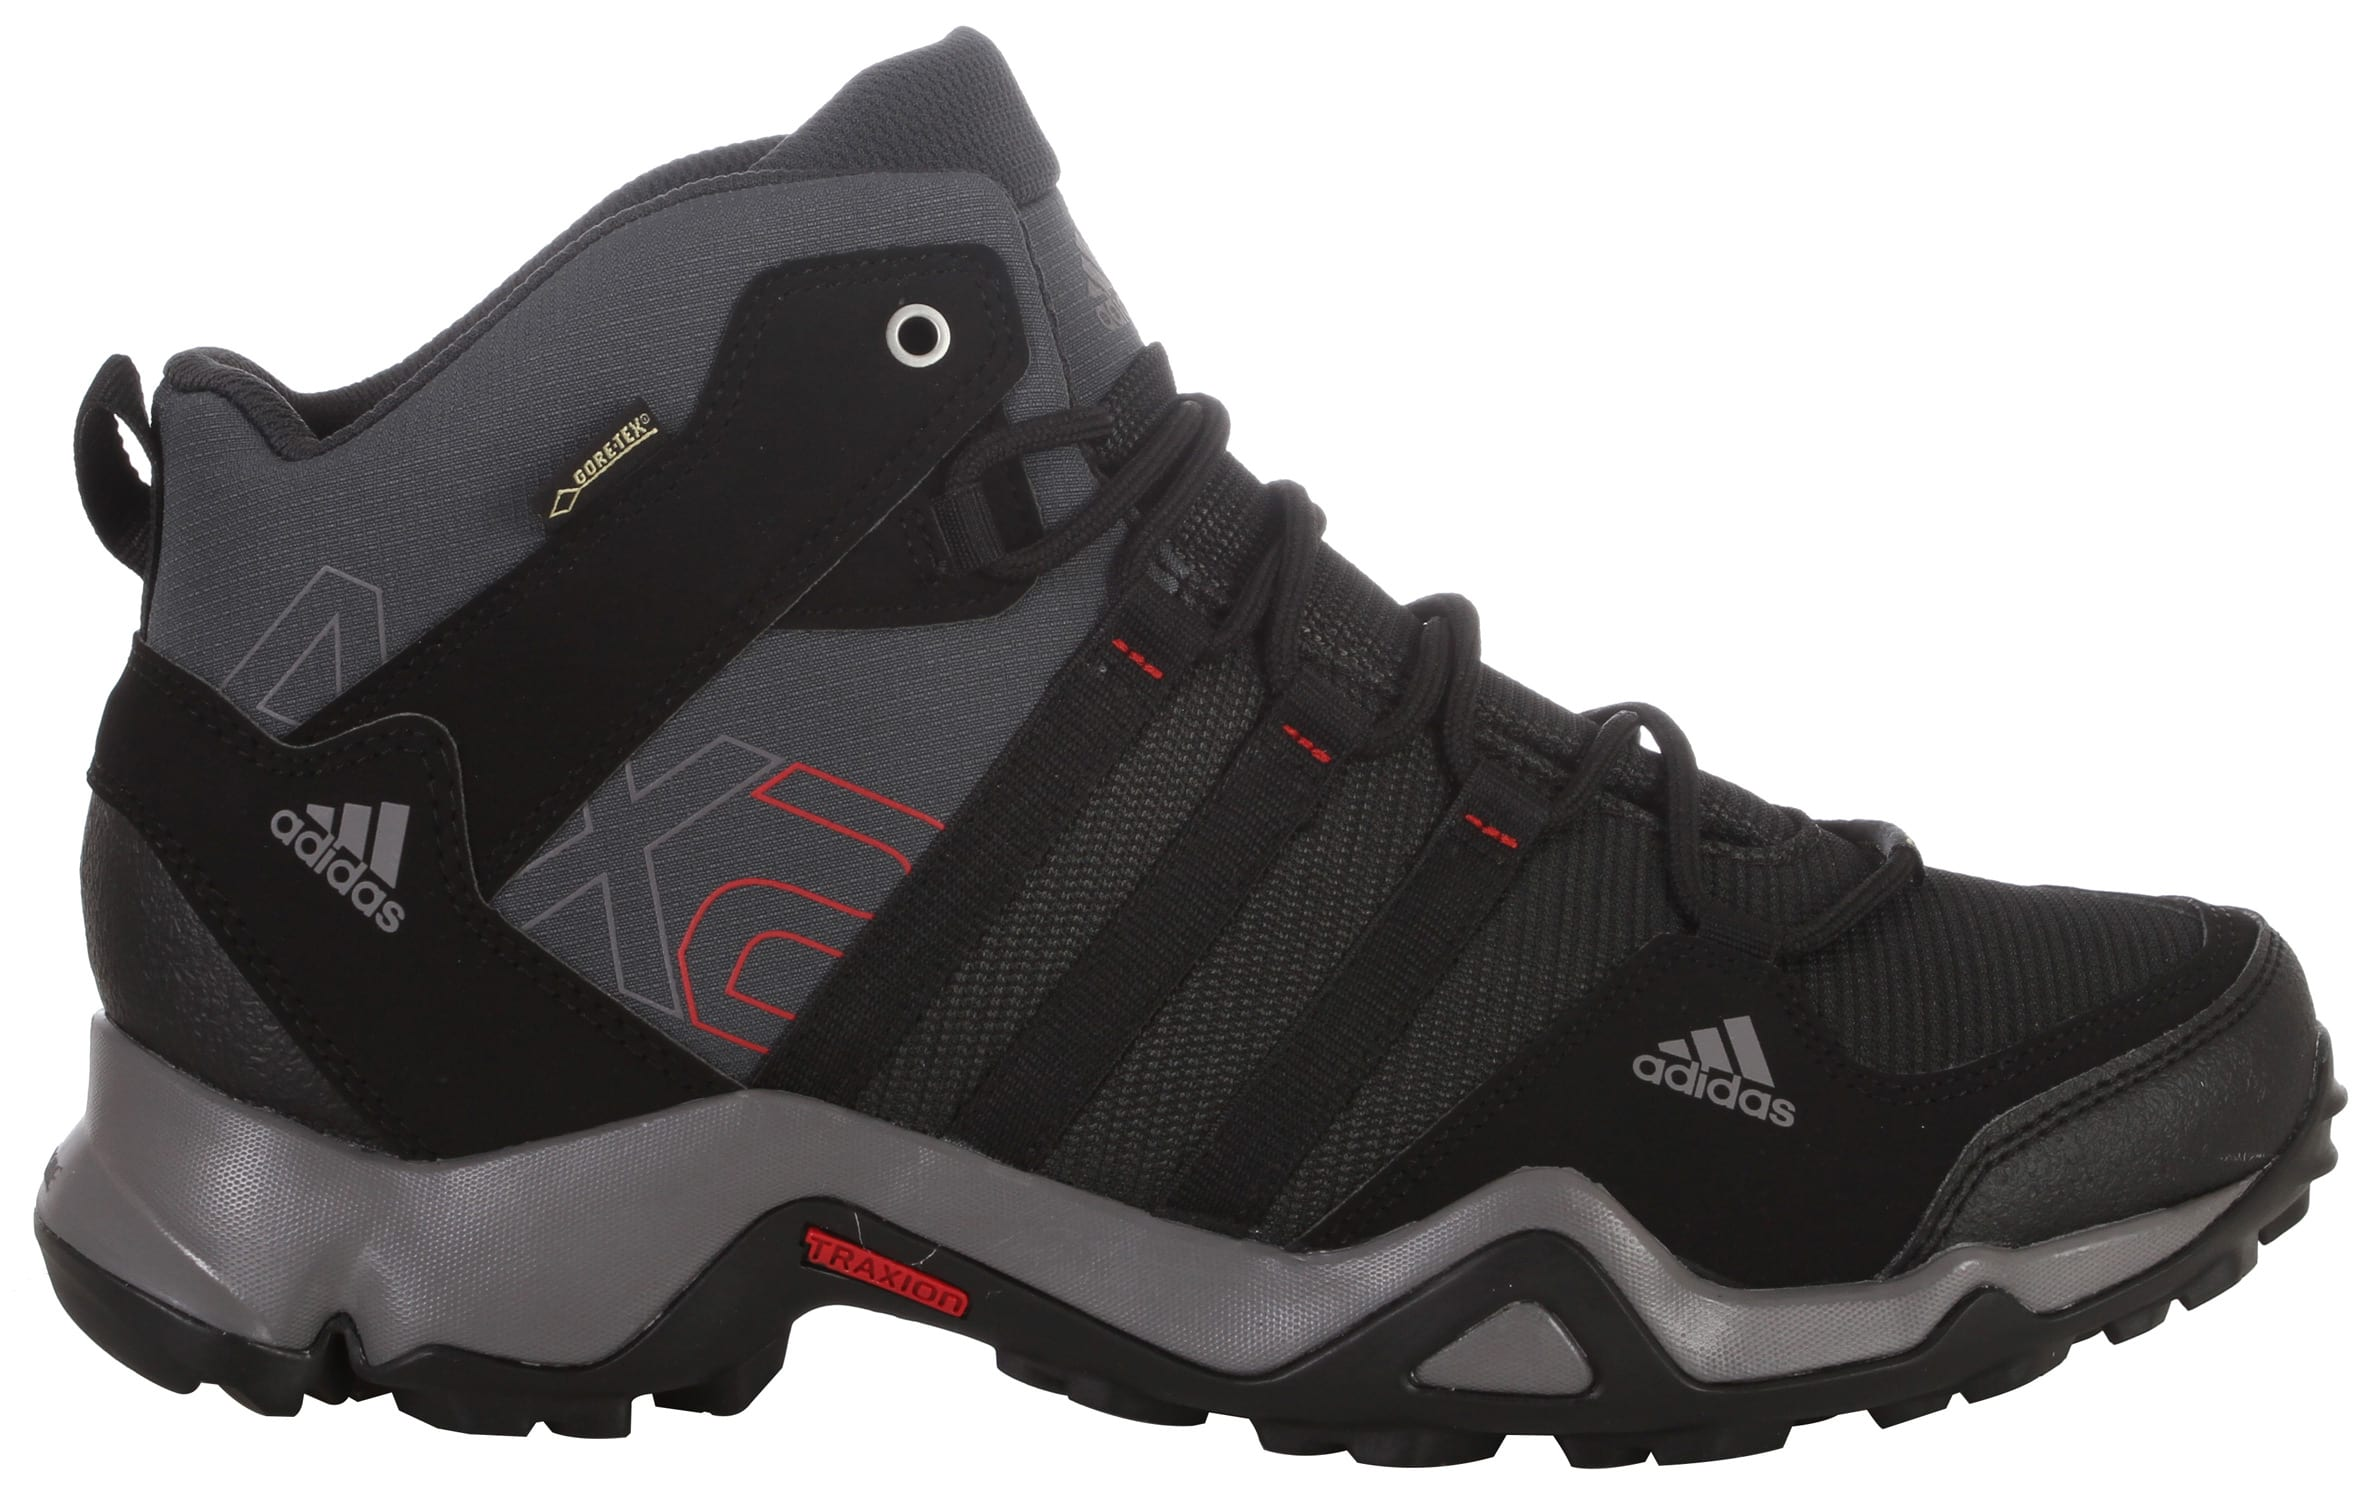 big sale cefaa 683b4 Adidas AX2 Mid GTX Hiking Boots - thumbnail 1